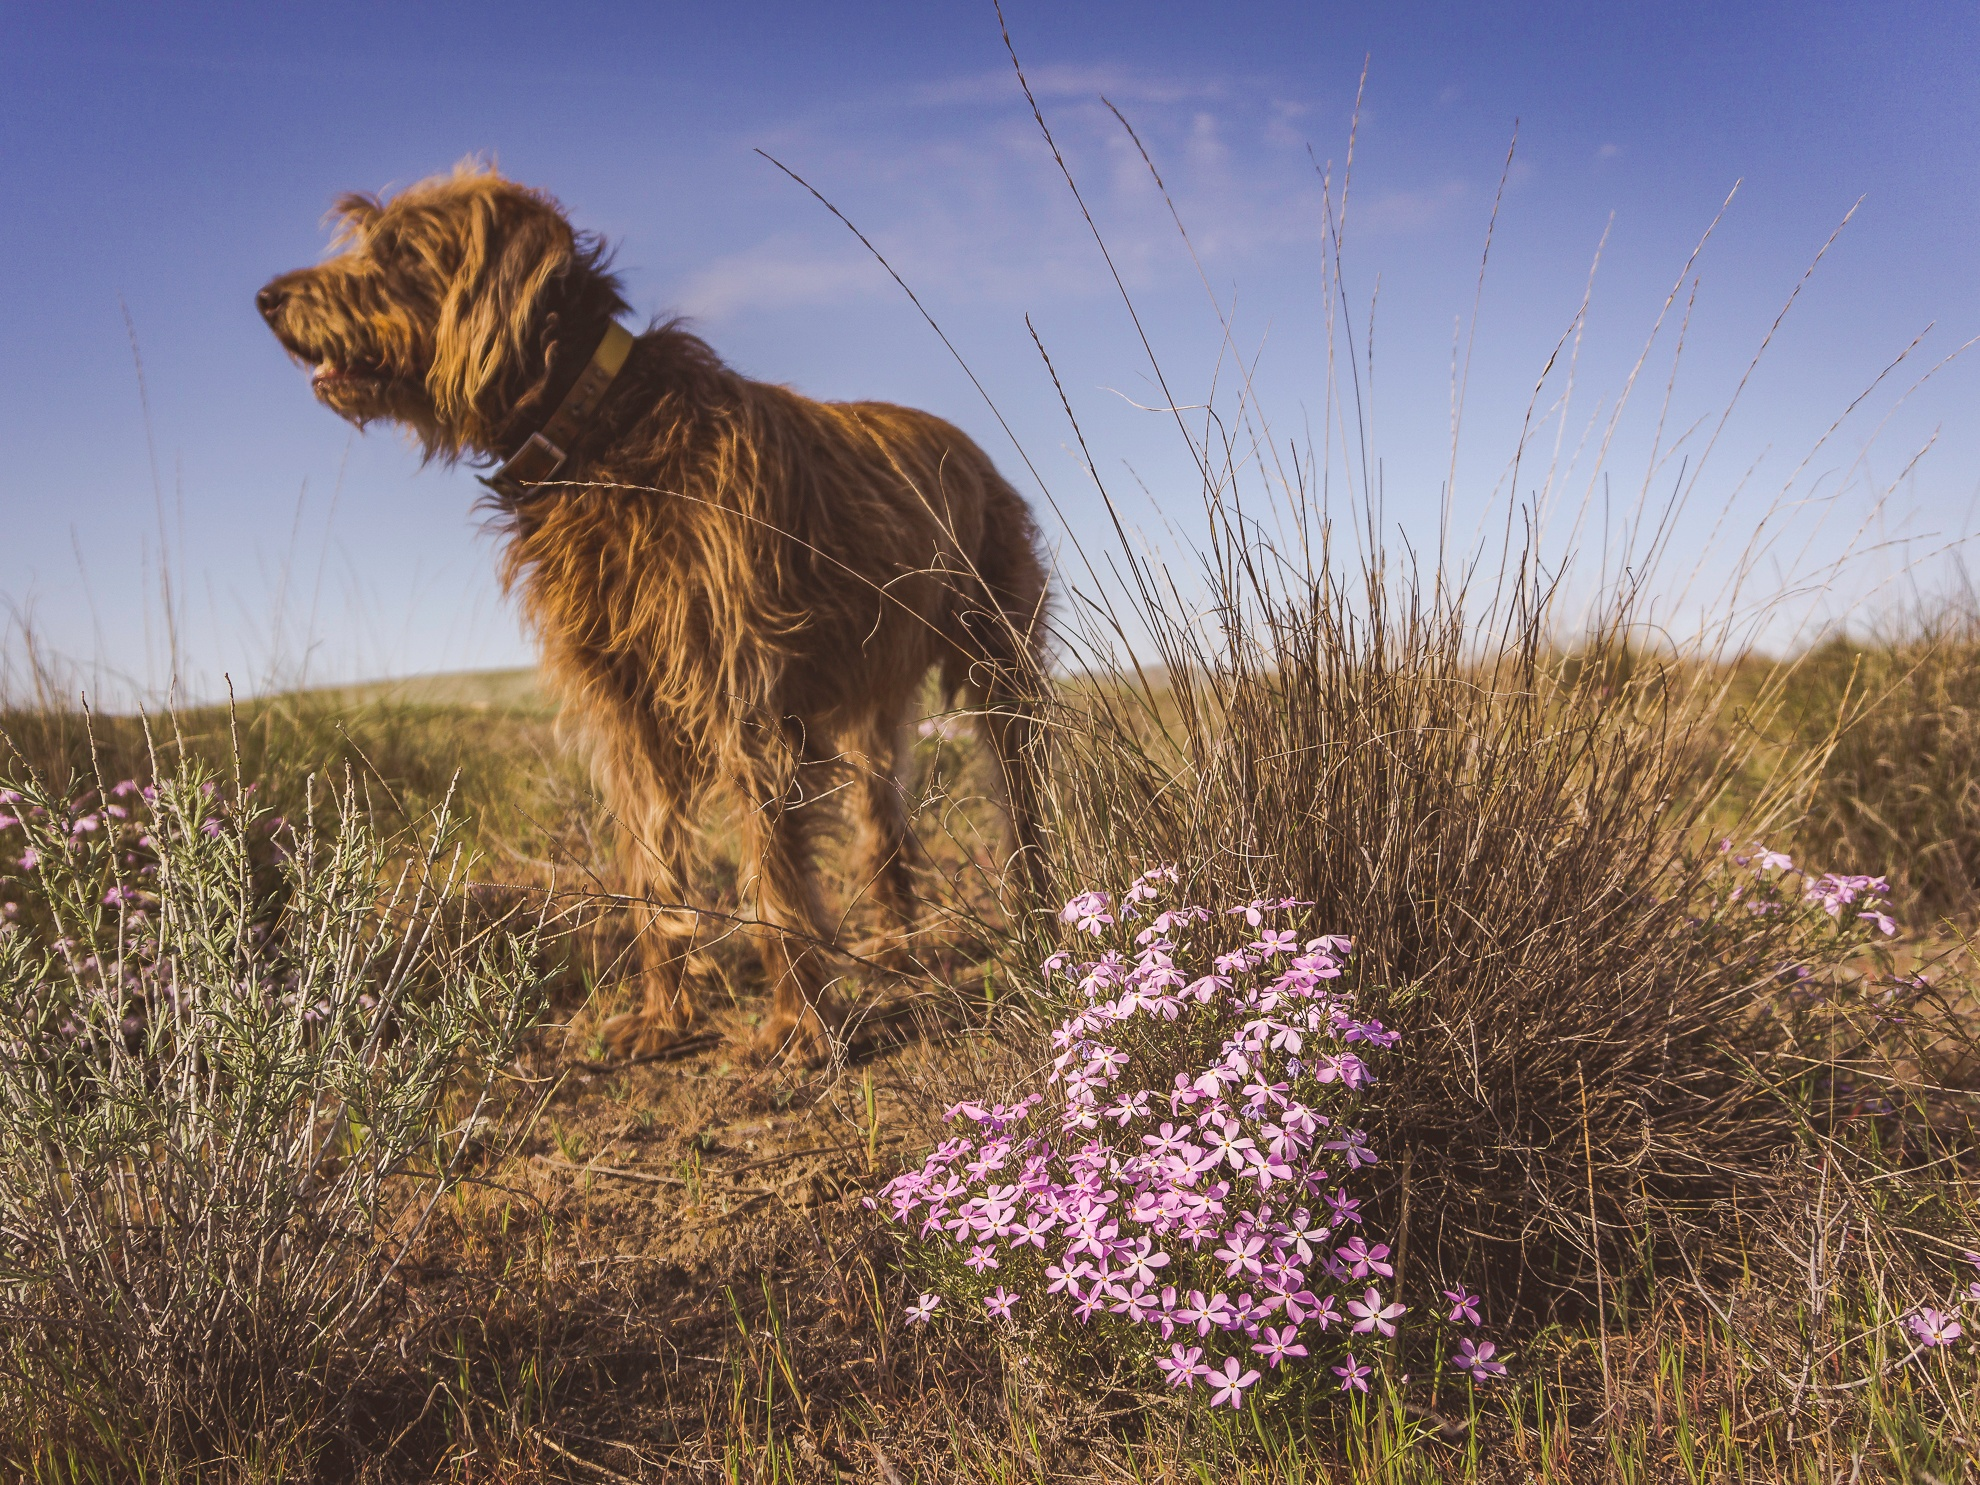 Gracie Admiring the Wildflowers by EarlH